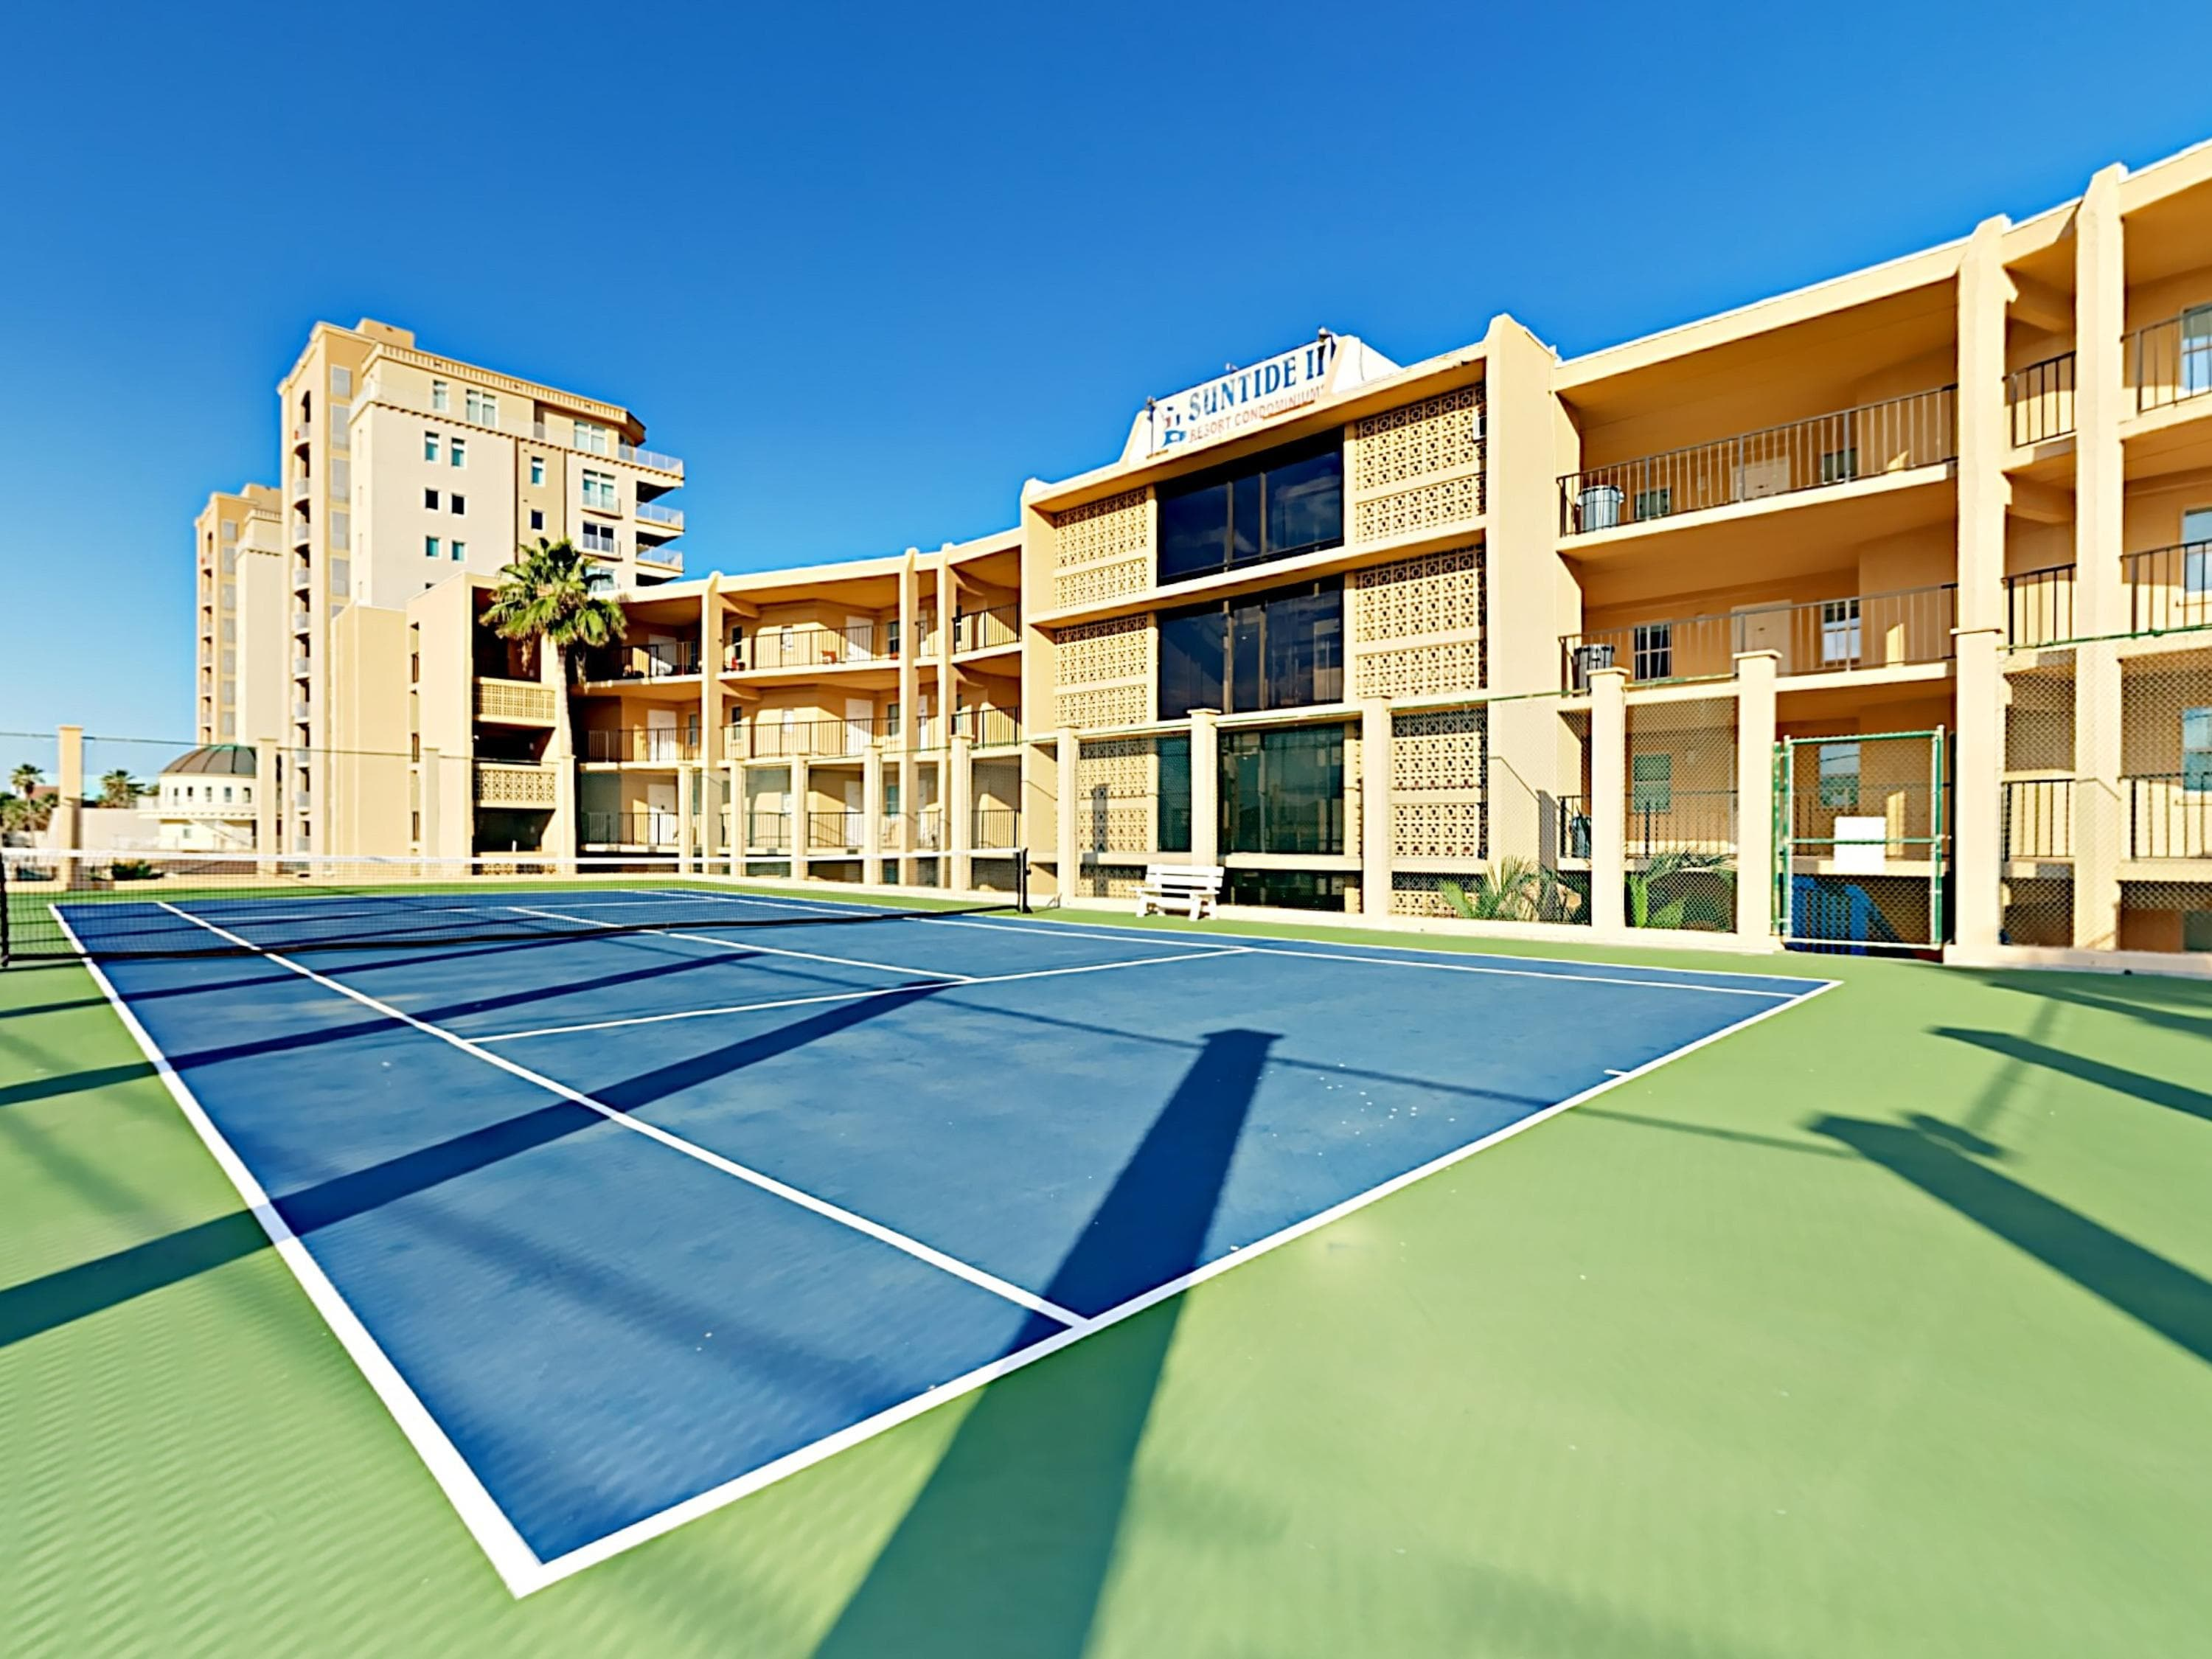 Play a match on the 2nd-floor tennis courts.